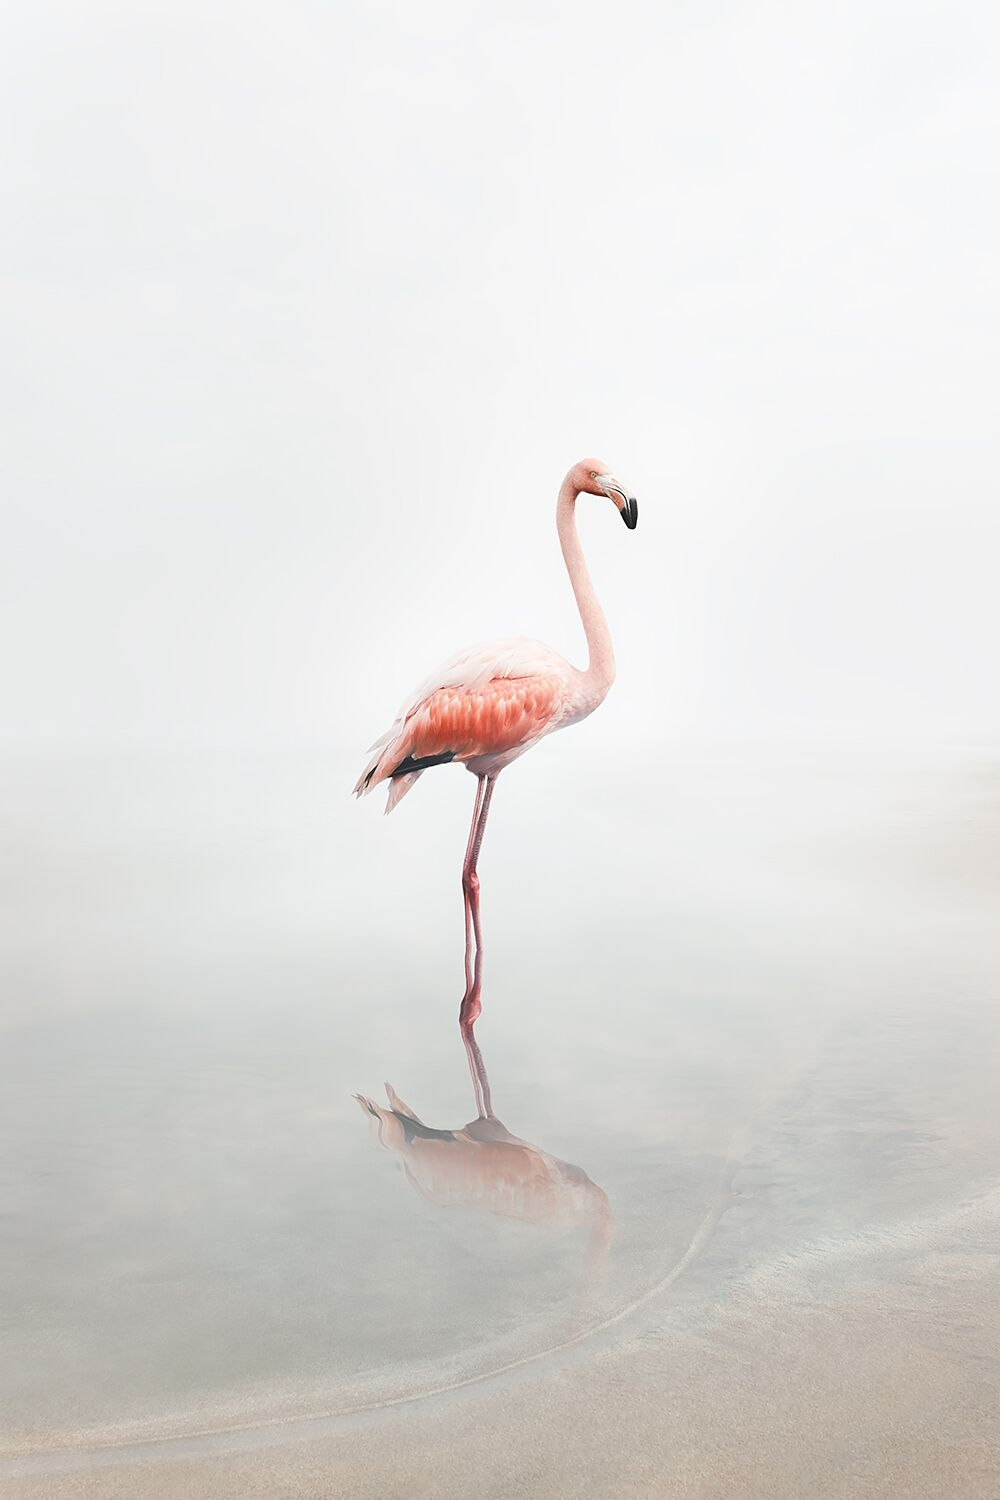 For Now Flamingo  by Alice  Zilberberg